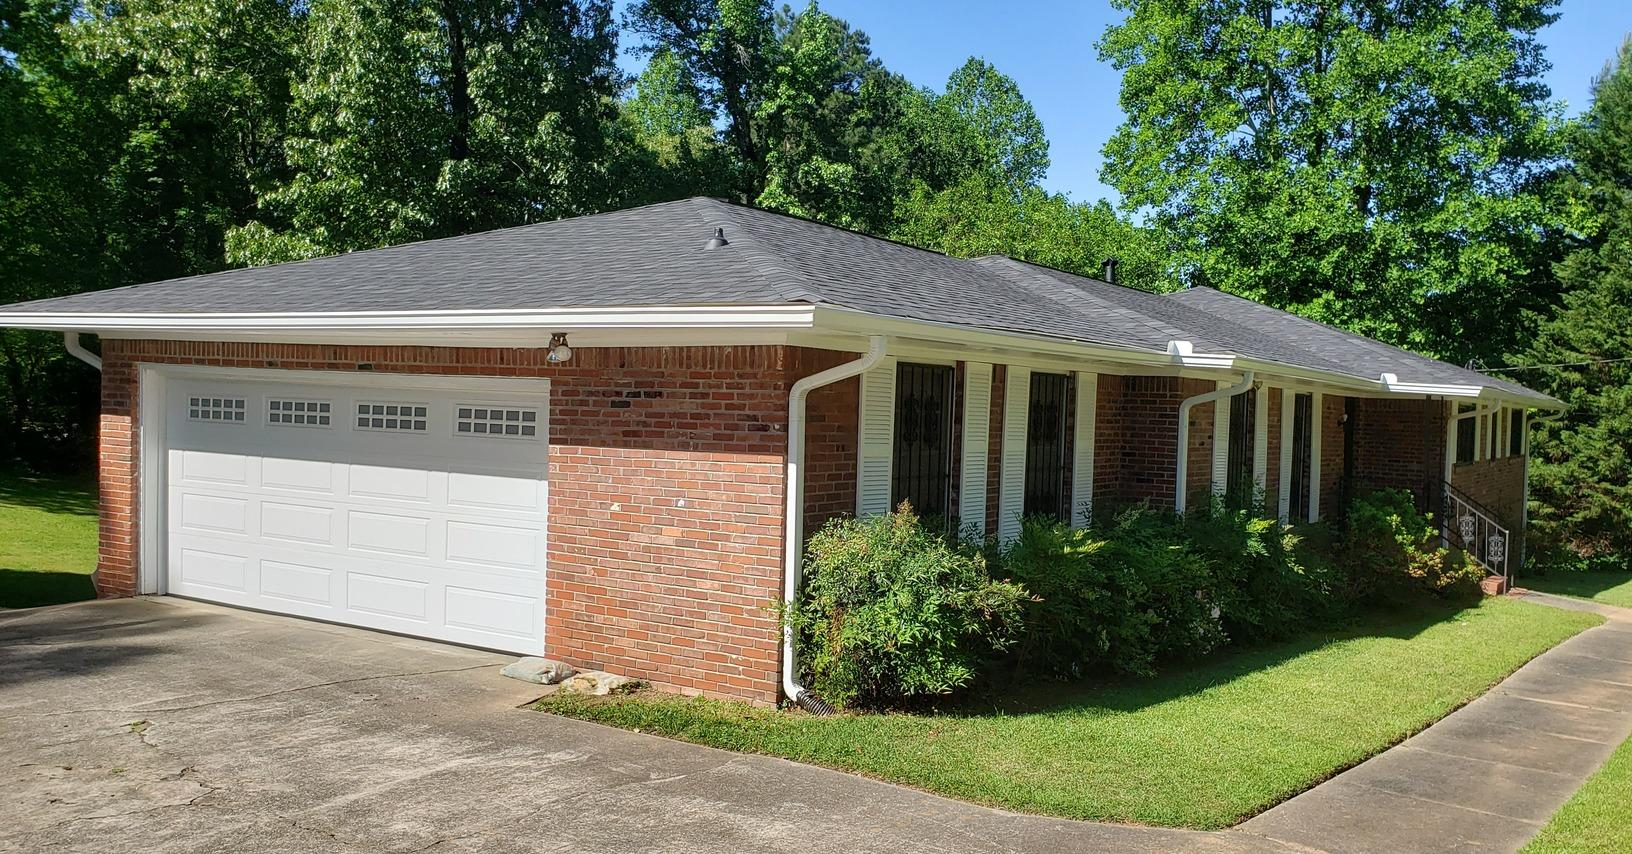 New roof and gutters in Atlanta, GA - After Photo